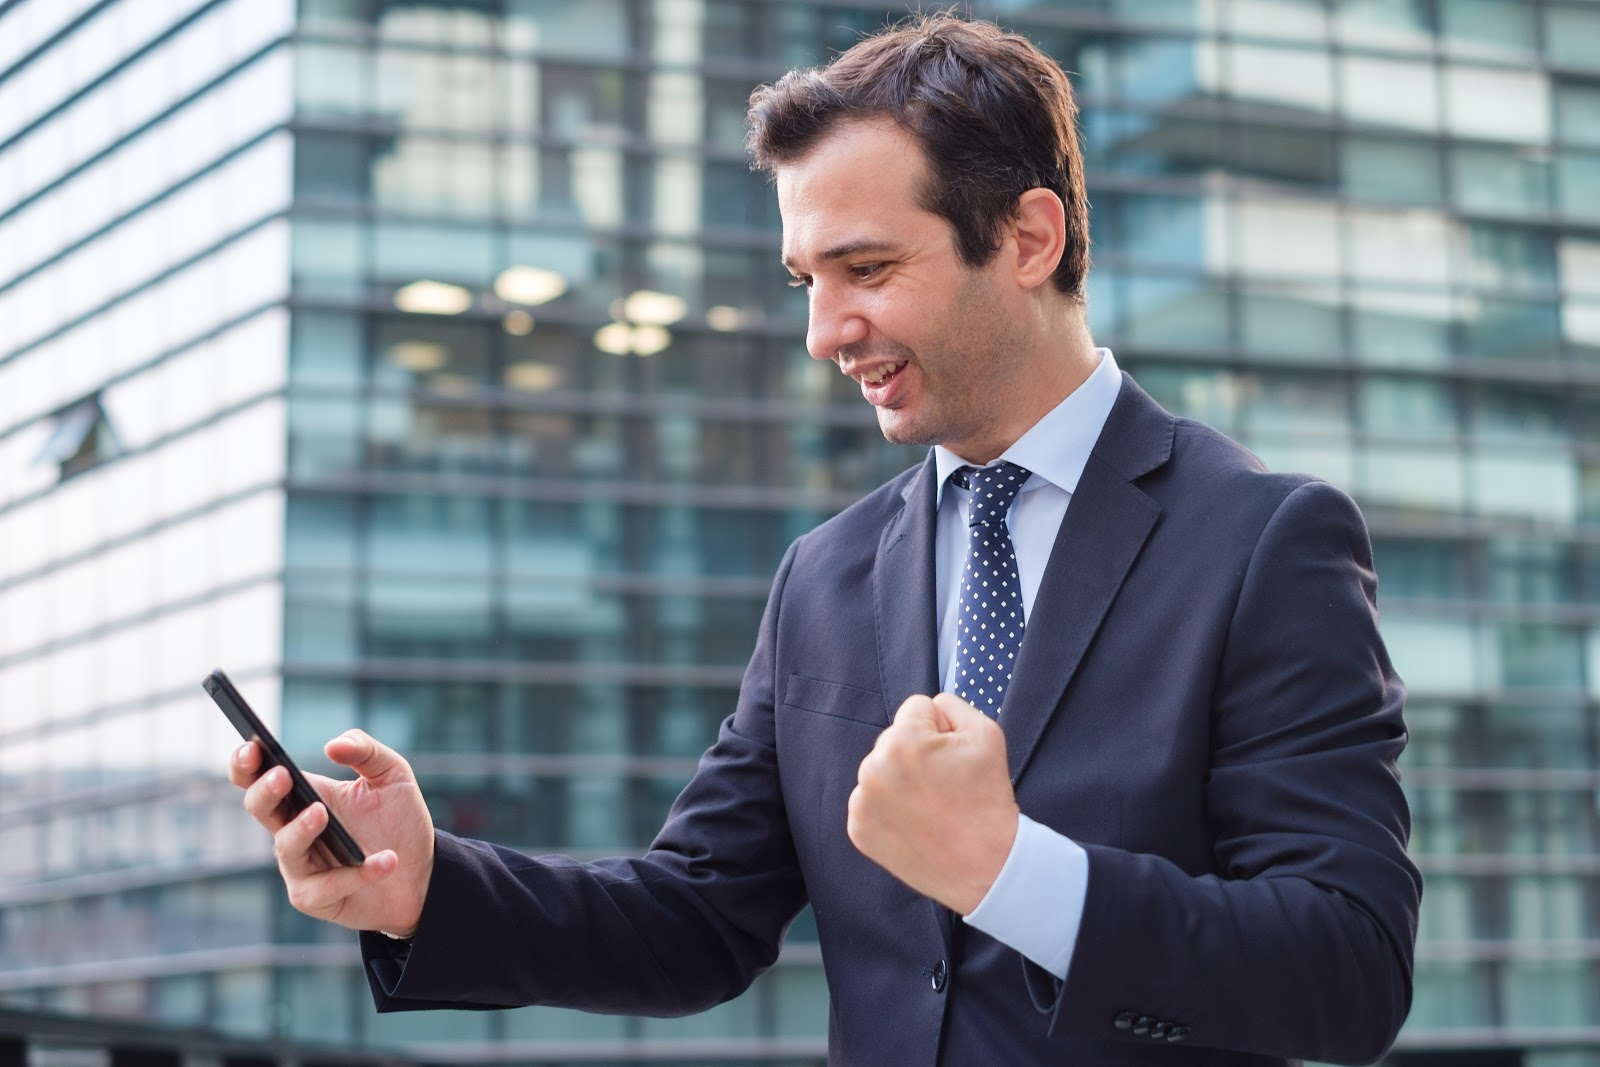 Man in a business suit holding his phone.